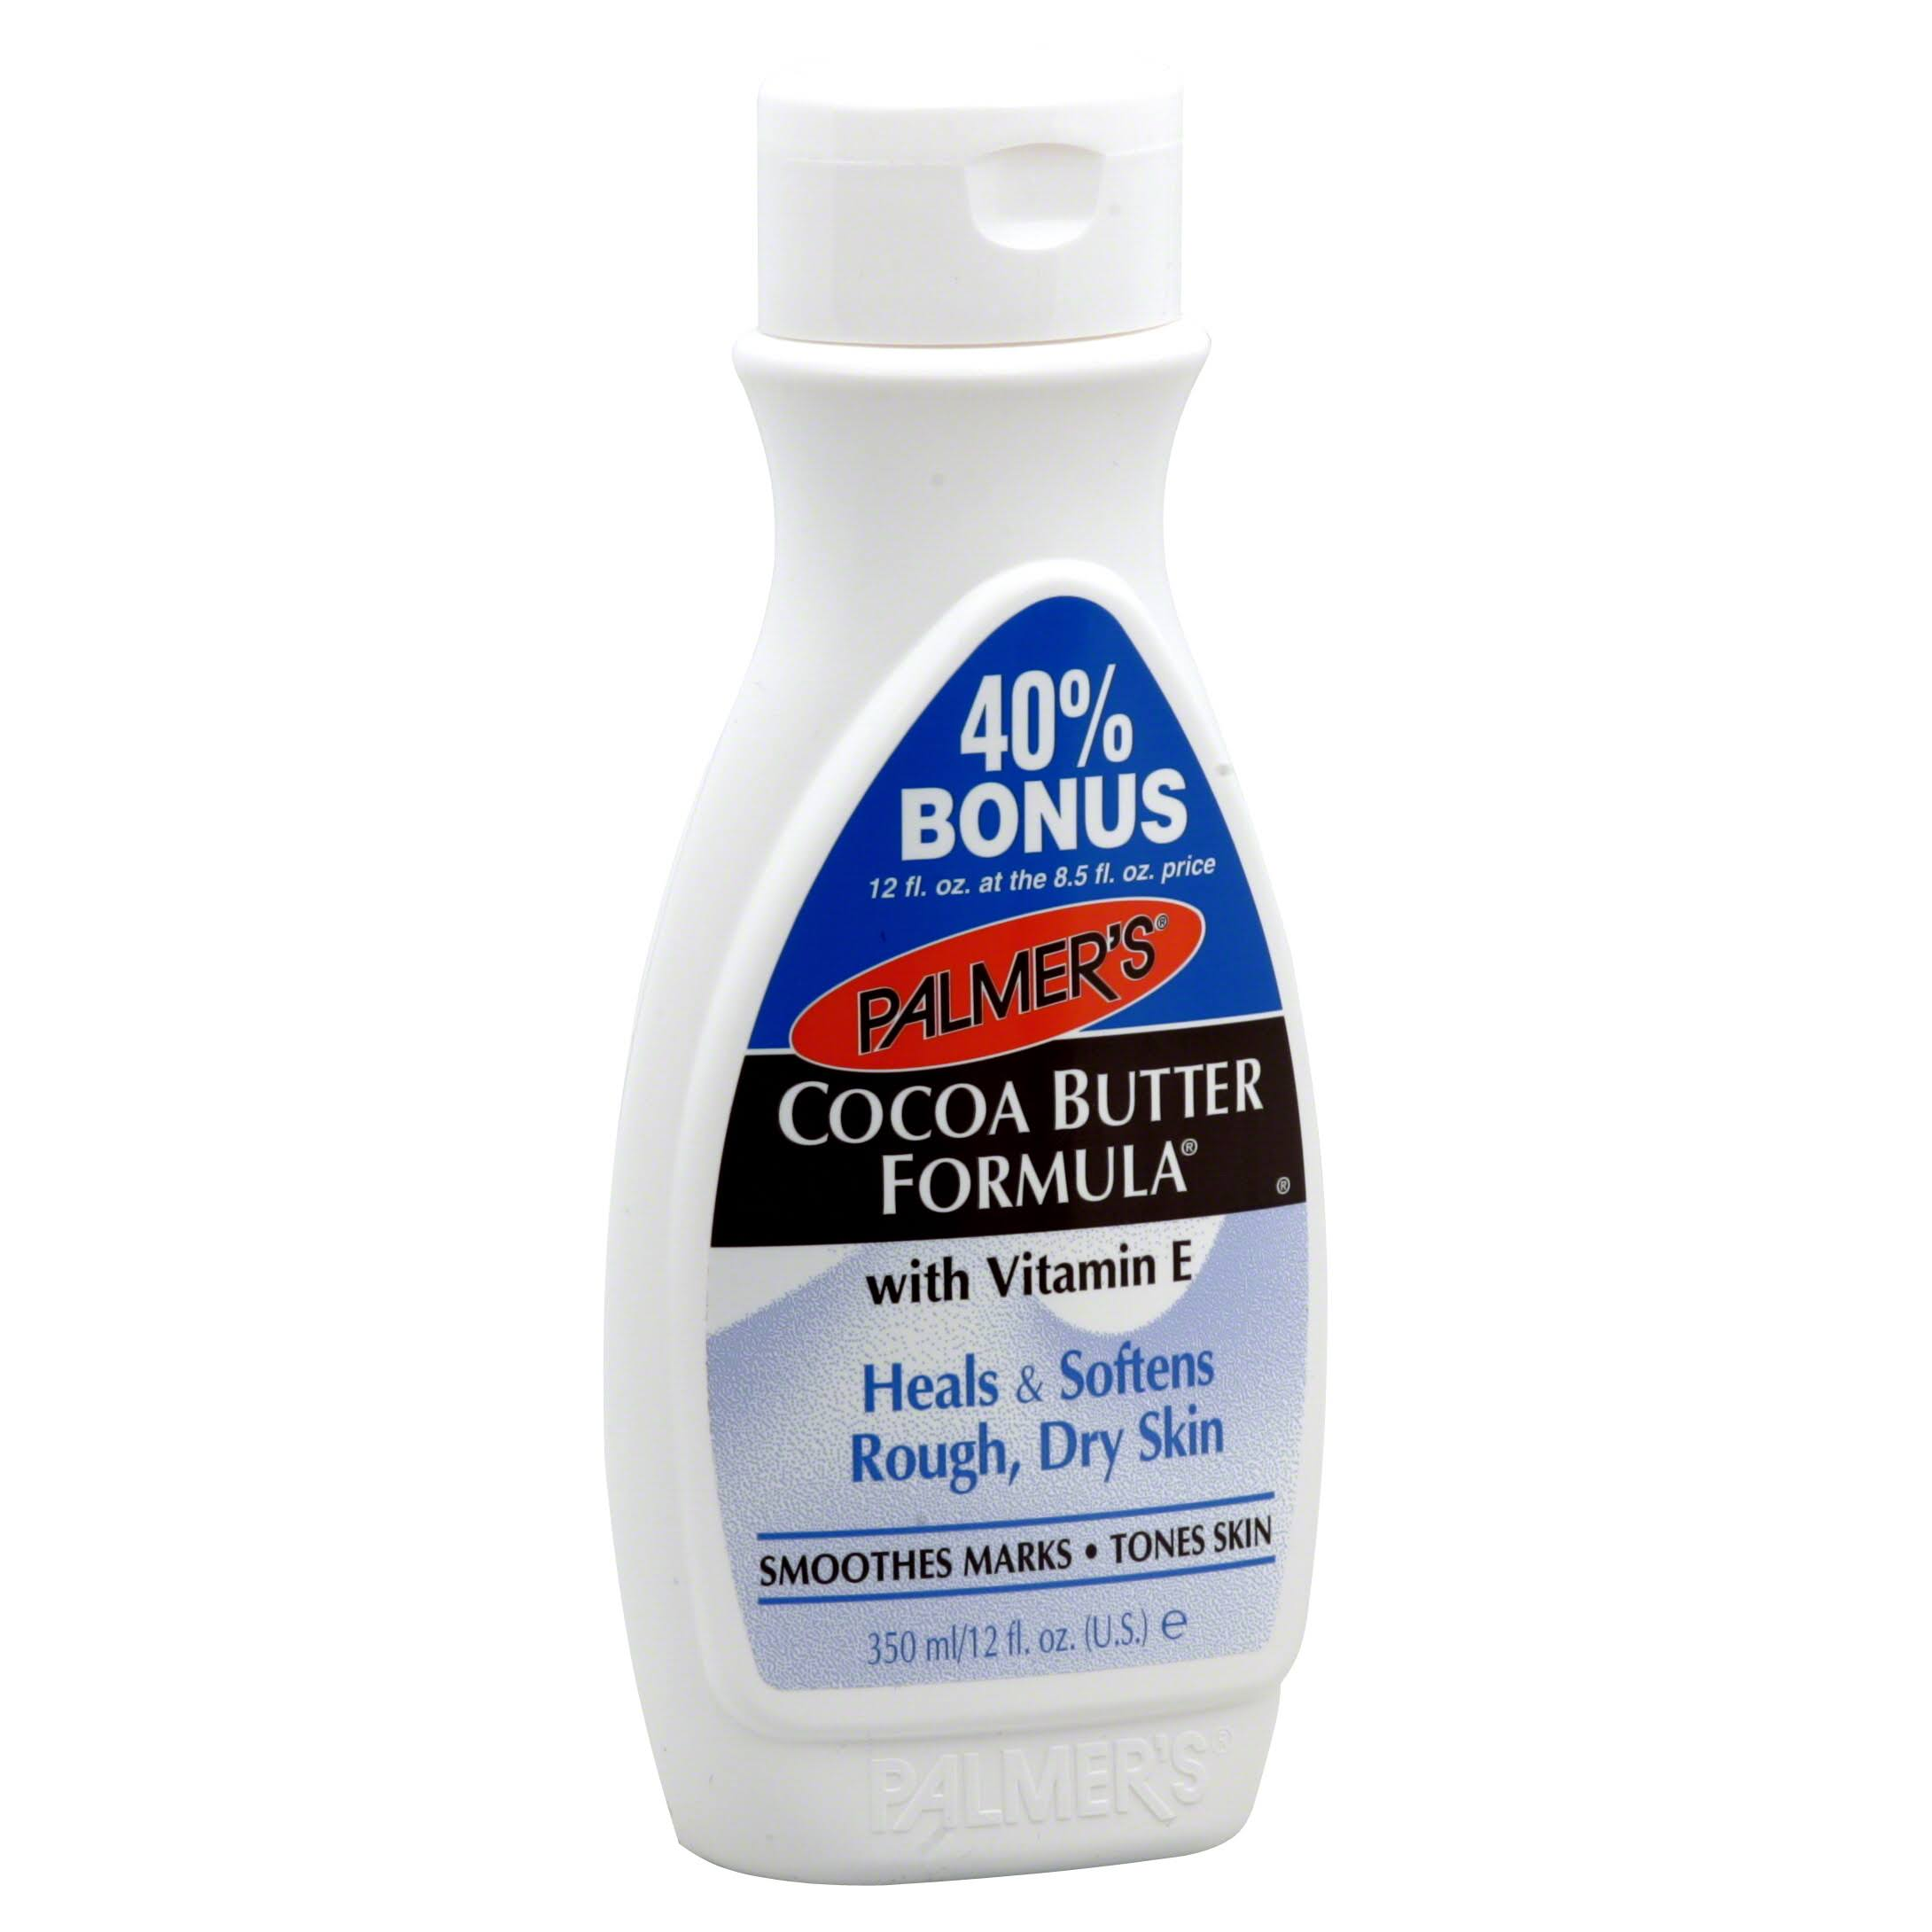 Palmers Cocoa Butter Formula Lotion - 350ml